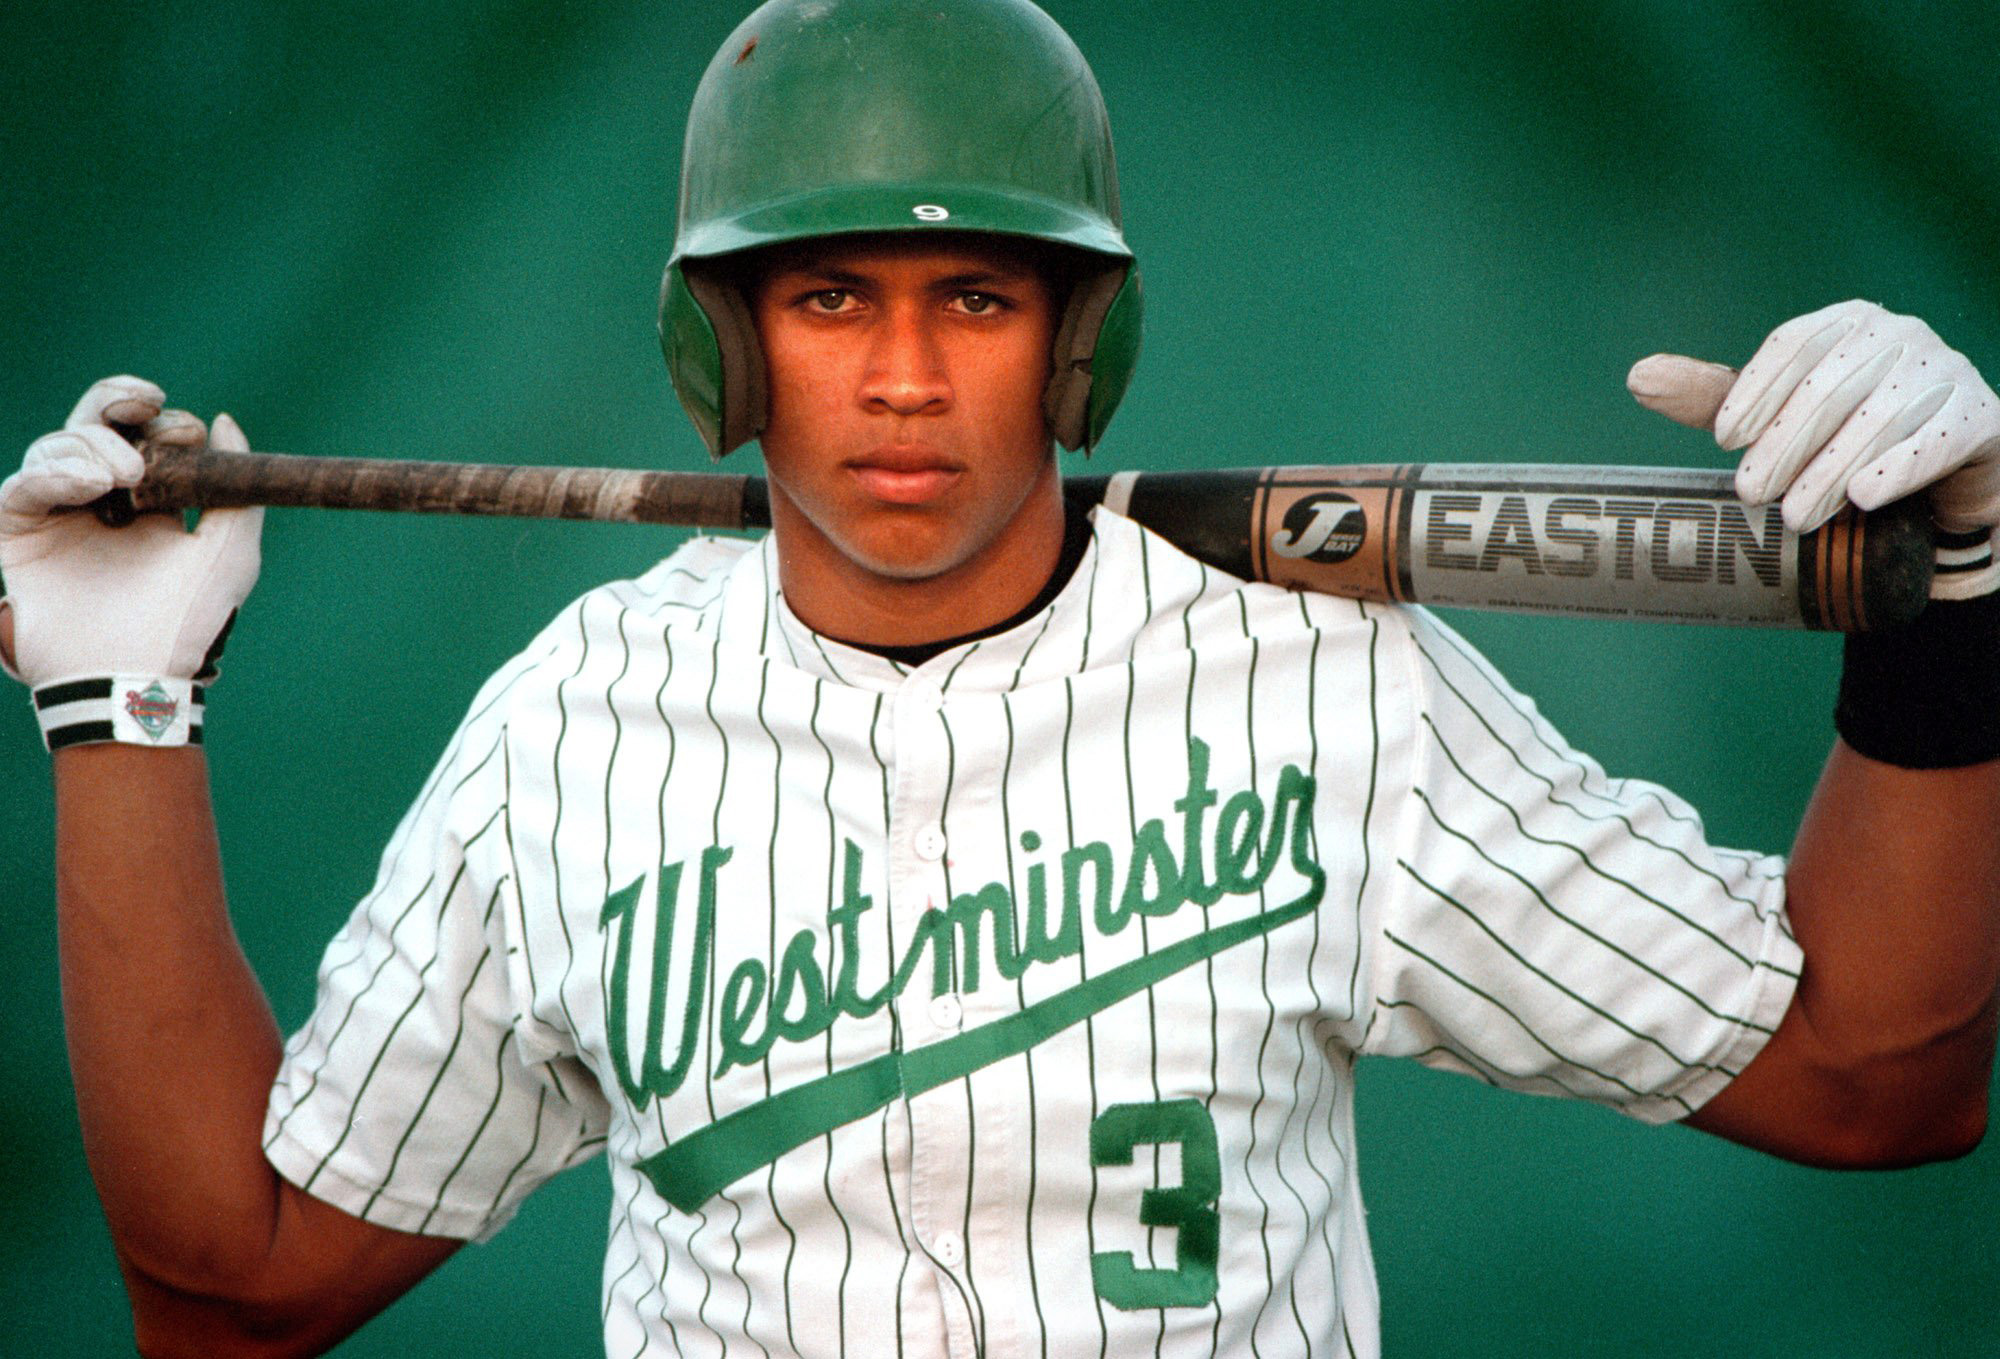 In a 1990s photo, Alex Rodriguez is seen when he played for Westminster Christian high school in Miami. Journalist Selena Roberts makes the case that Rodriguez likely used steroids in high school and may have taken HGH while with the New York Yankees, in her new biography of the MVP. (AP Photo/Miami Herald, David Bergman) ** MAGS OUT ** ORG XMIT: FLMIH501